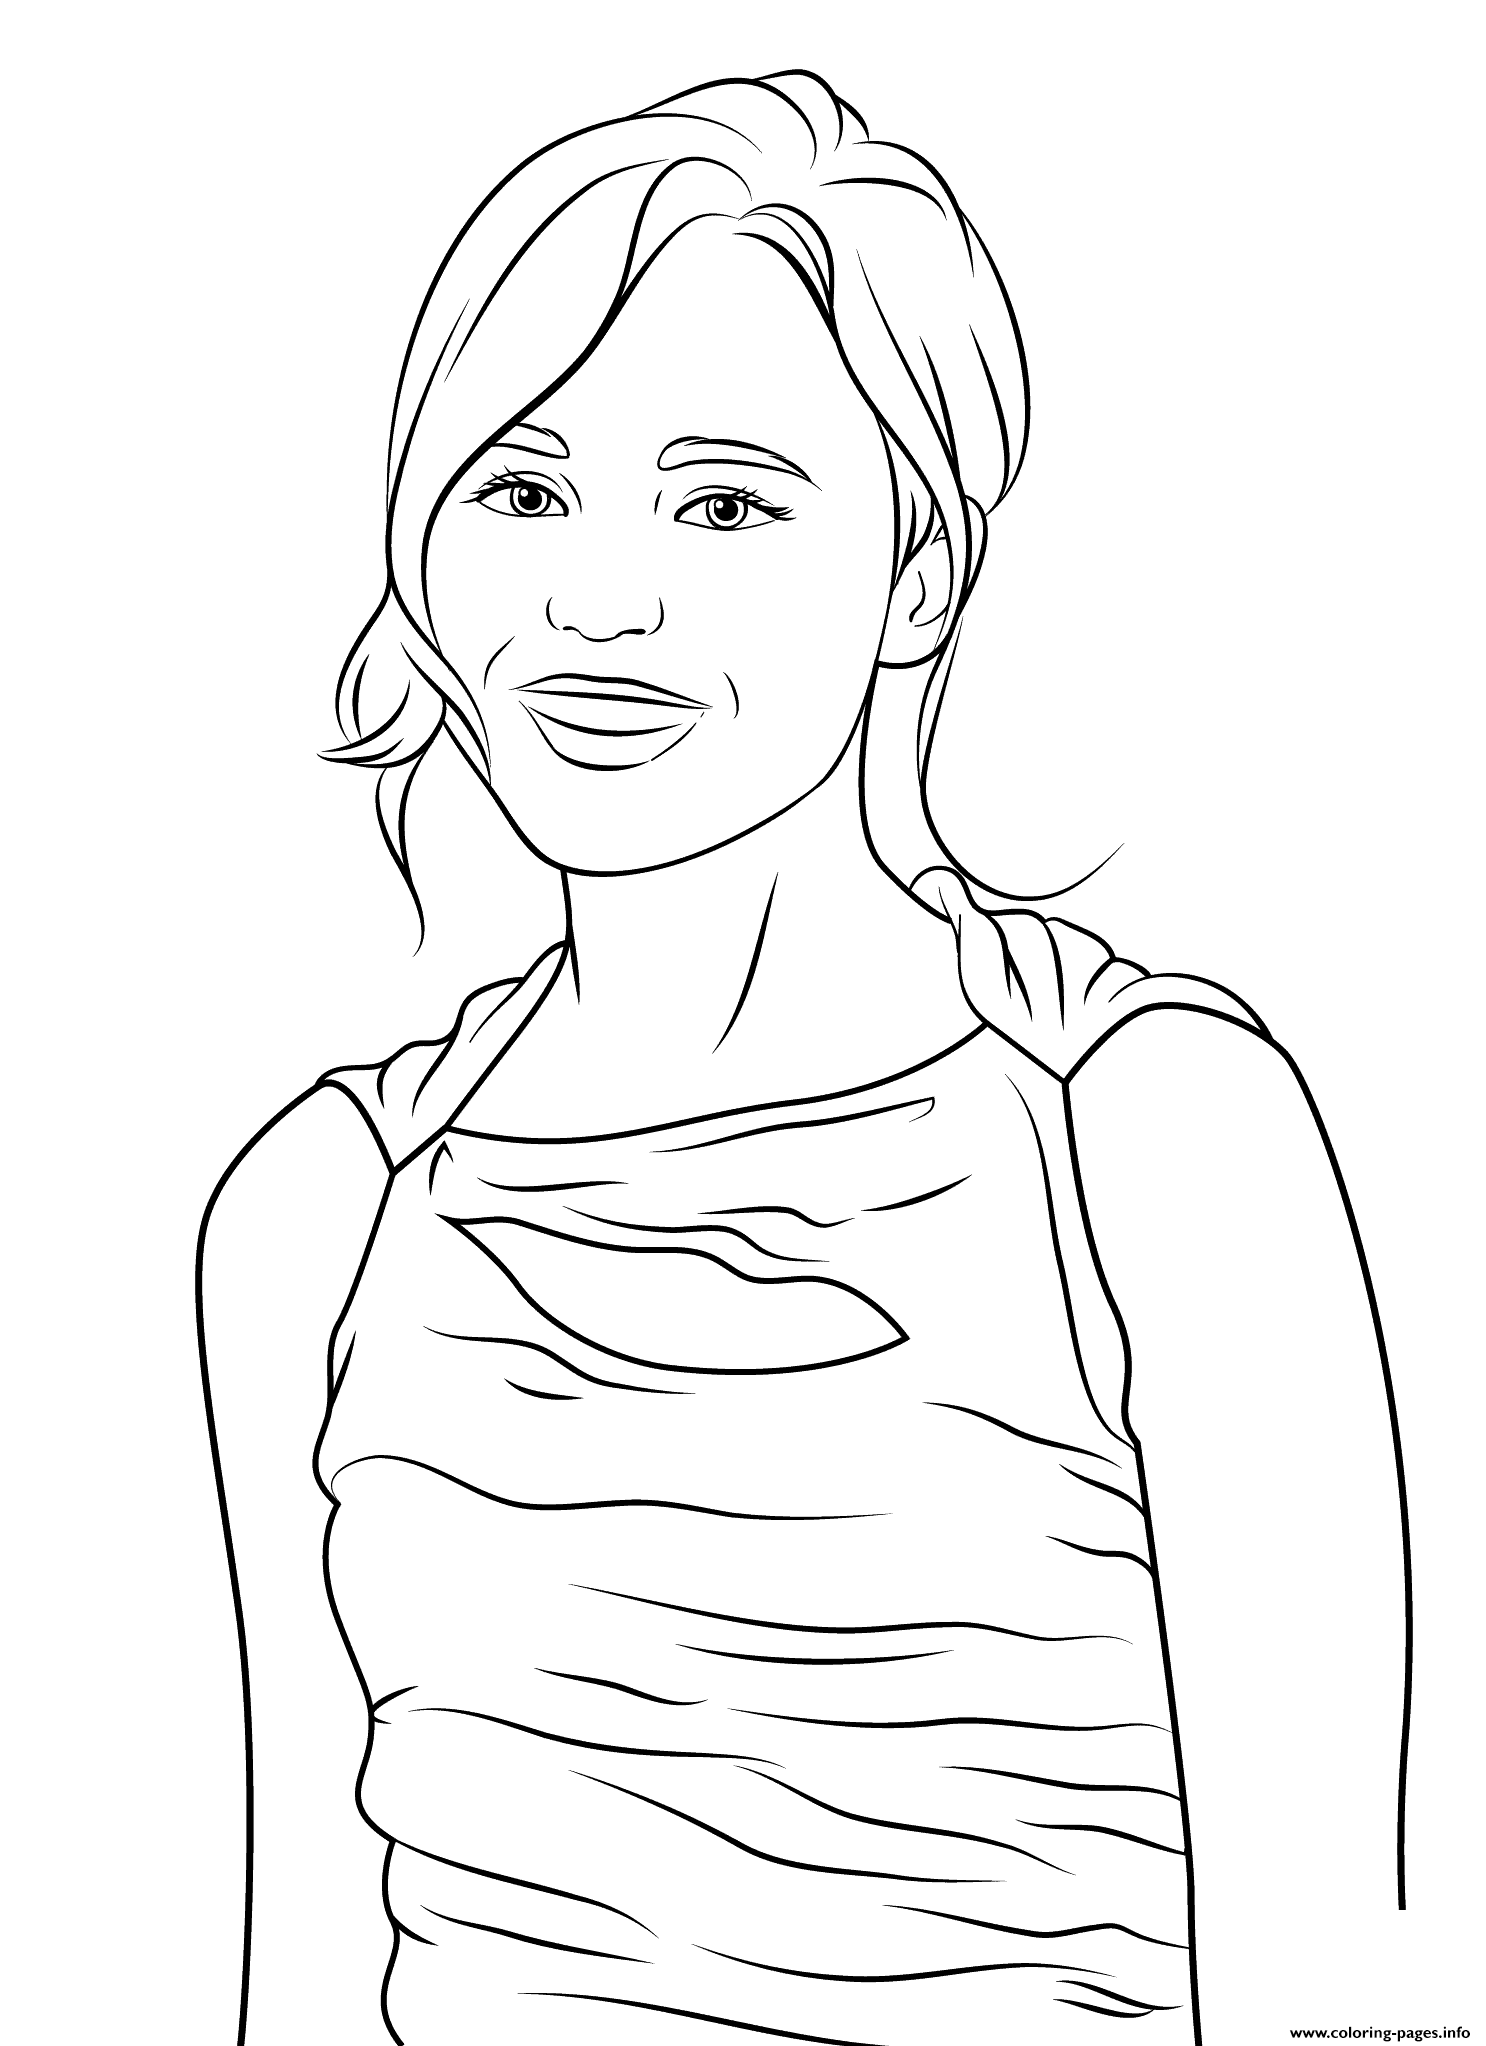 ellen page celebrity coloring pages - Celebrity Coloring Pages